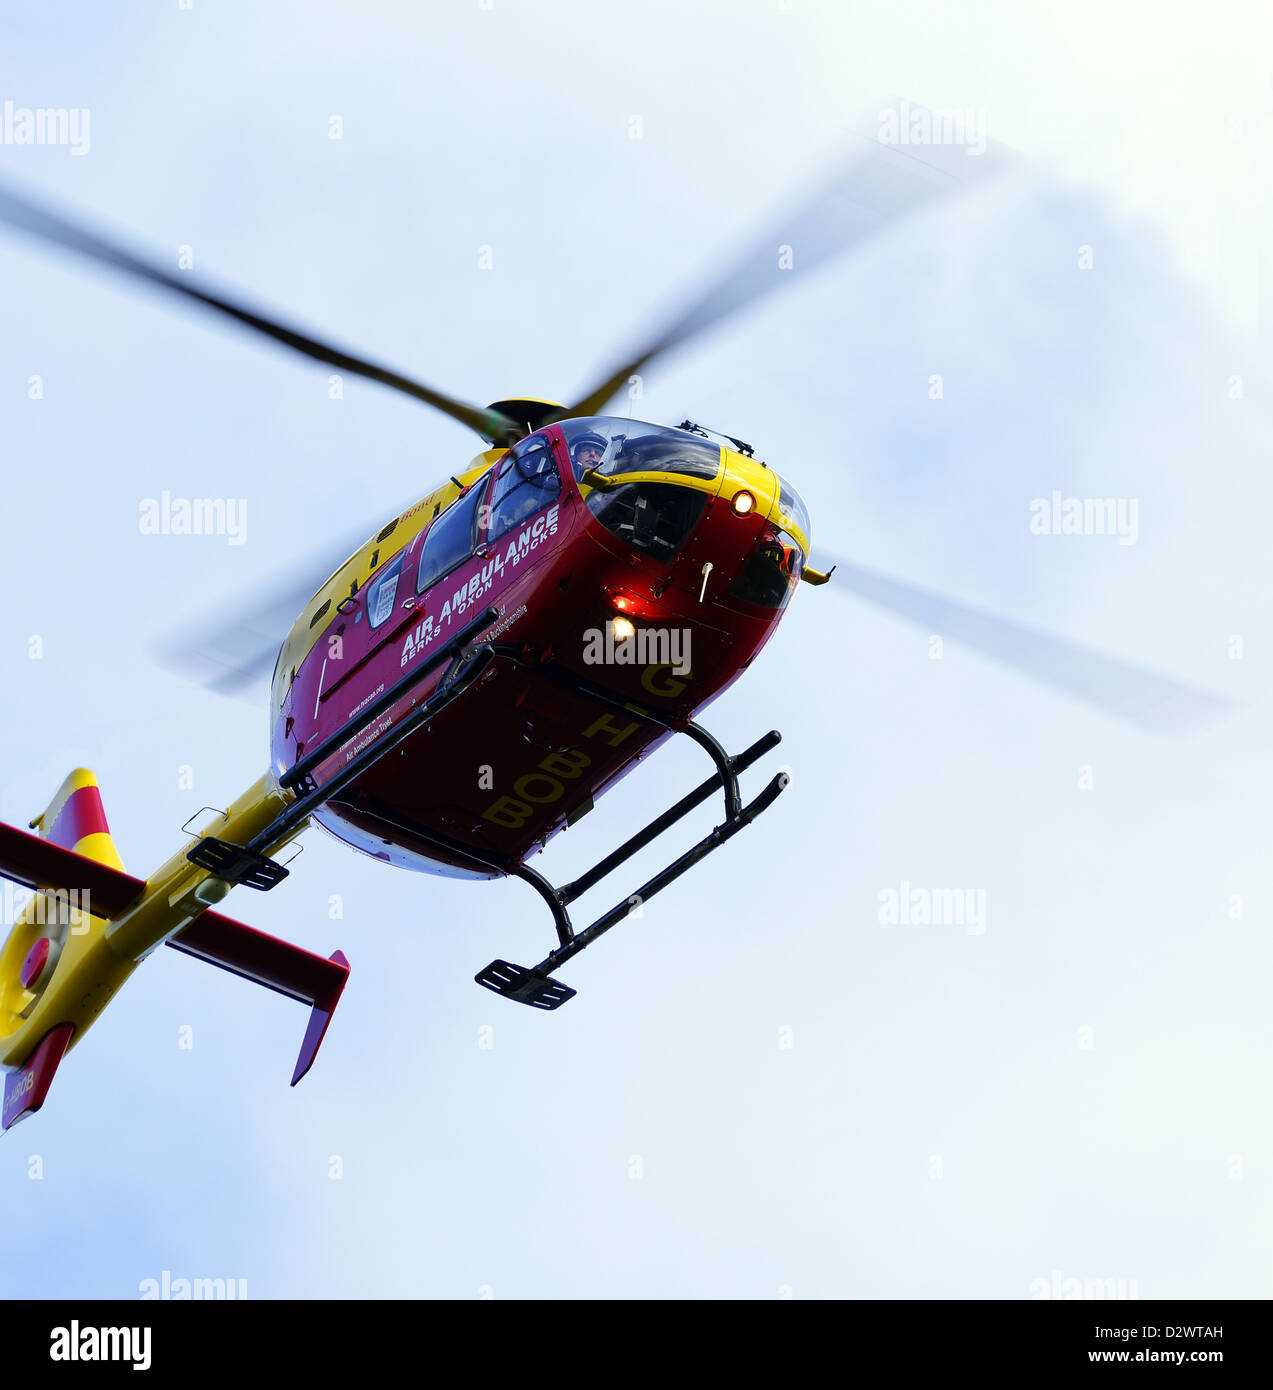 Berkshire / Oxfordshire / Buckinghamshire Air Ambulance at Liss, Hampshire - Stock Image